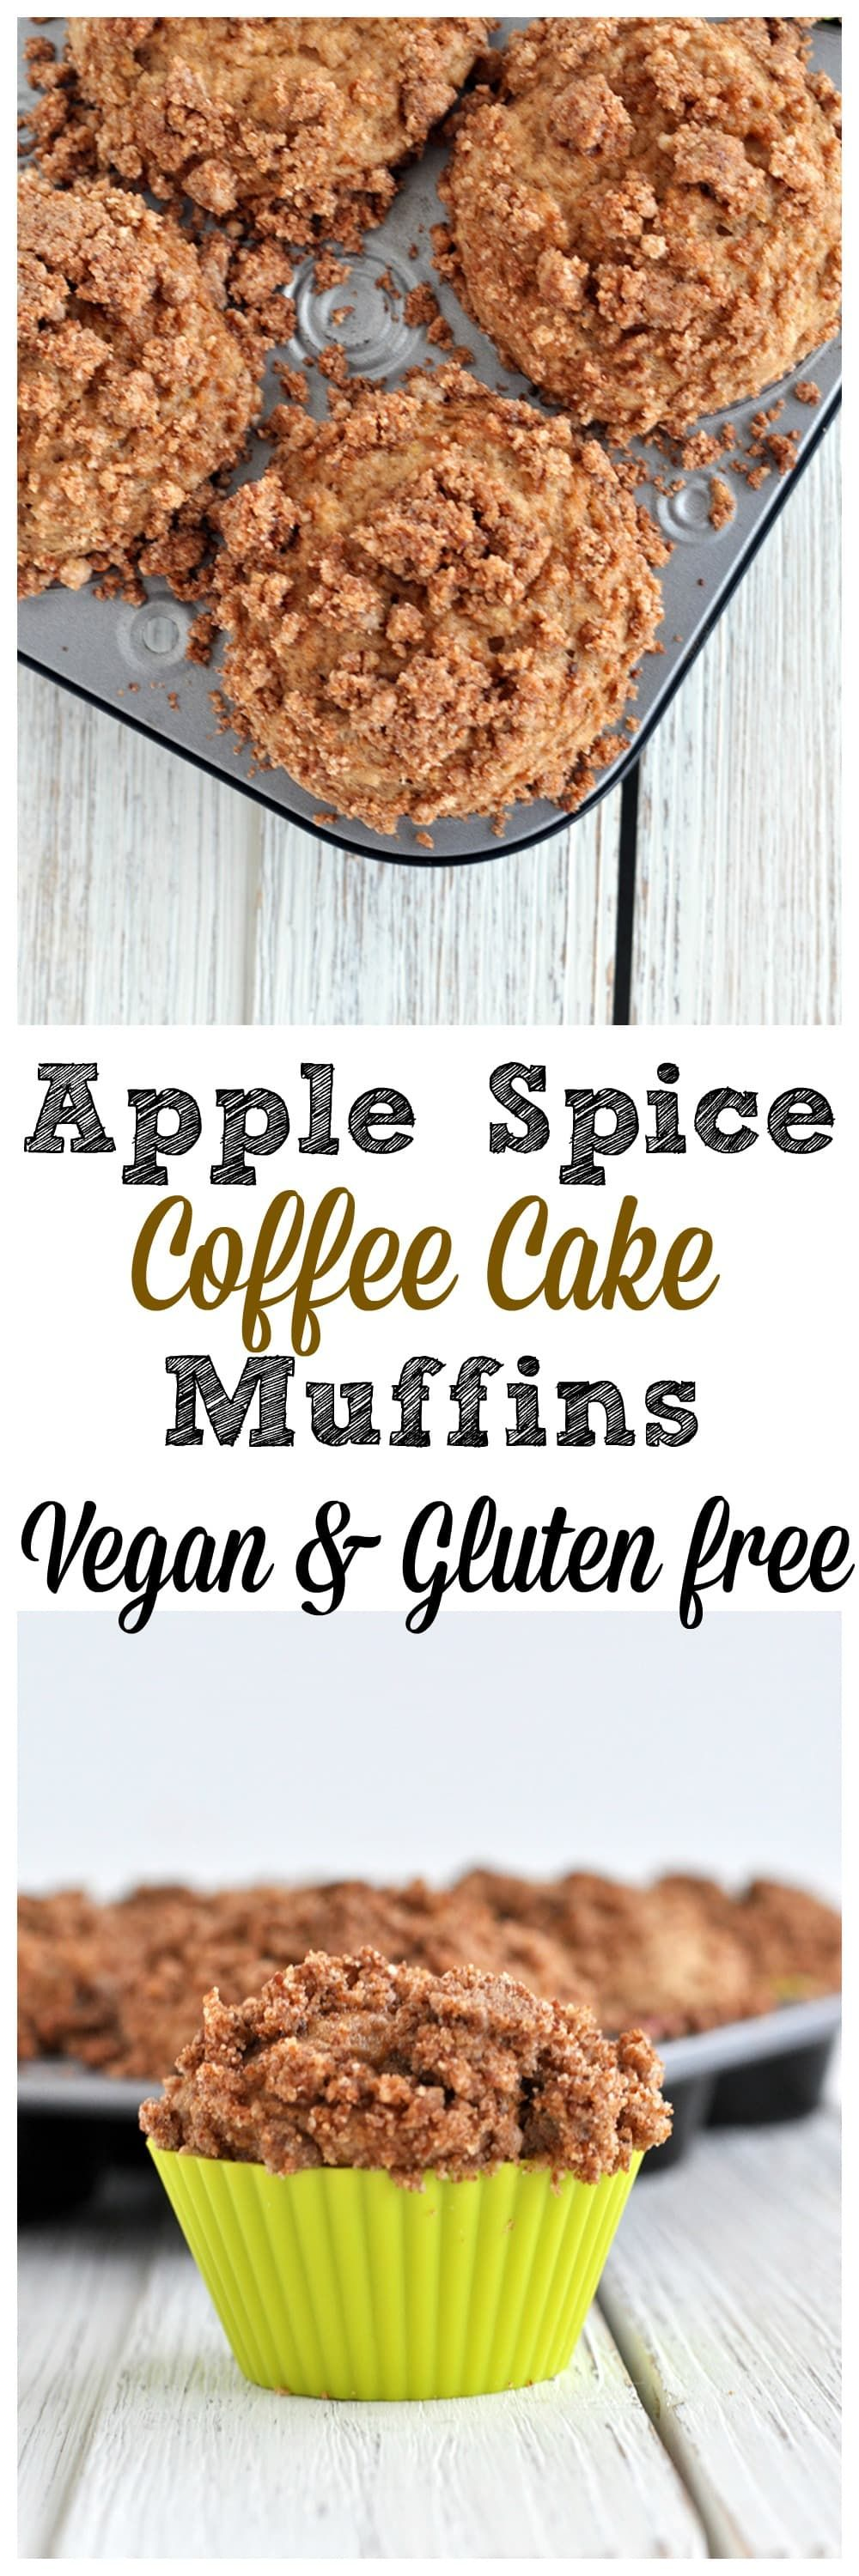 Warm Spices And A Crunchy Topping Make These Apple Spice Coffee Cake Muffins Special Vegan Vegan Dessert Recipes Coffee Cake Vegan Desserts